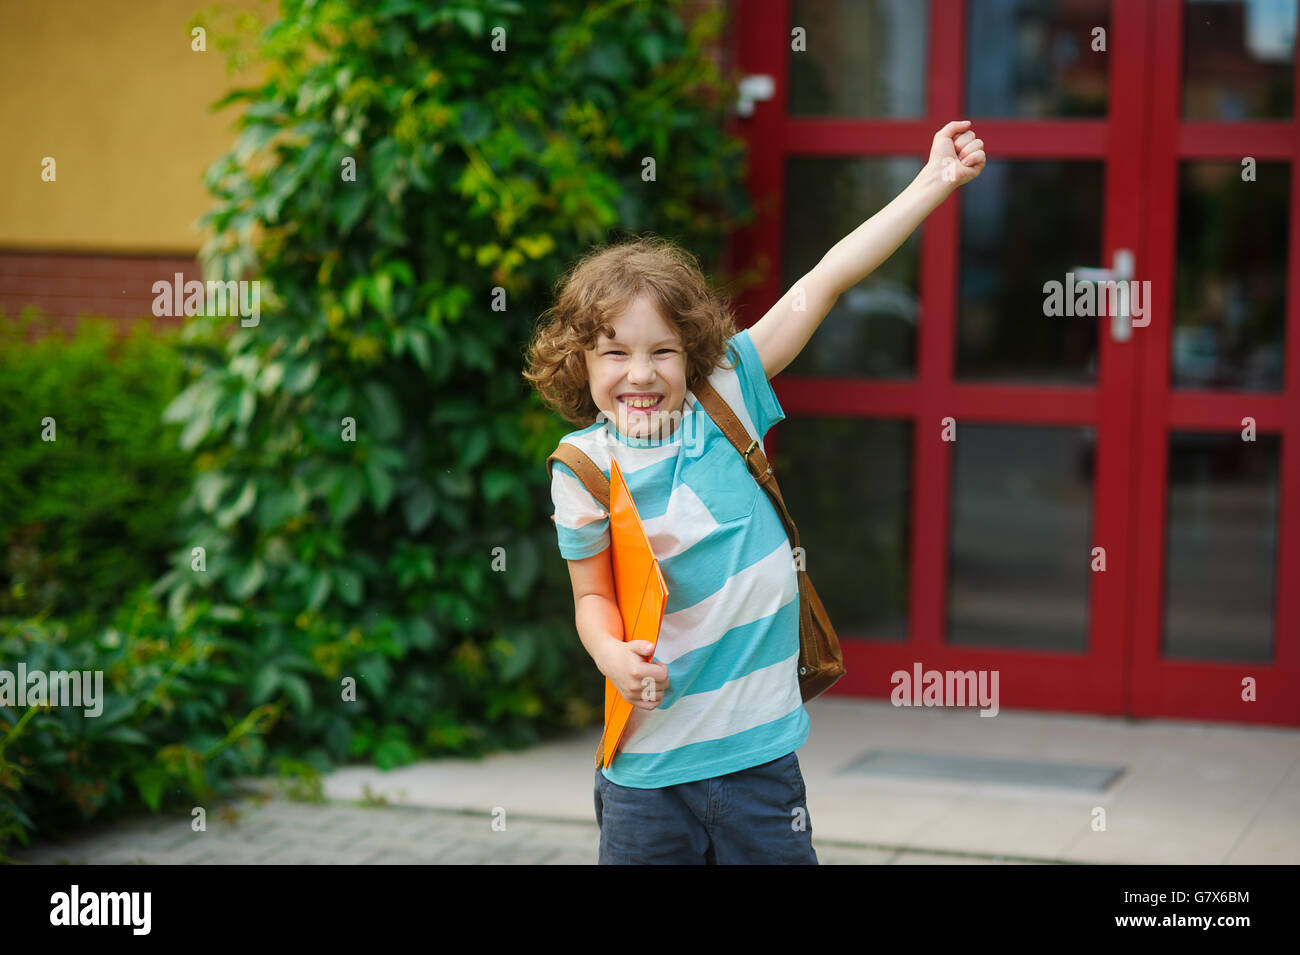 The schoolboy rejoices to the termination of academic year and the beginning of summer vacation. The boy has raised - Stock Image